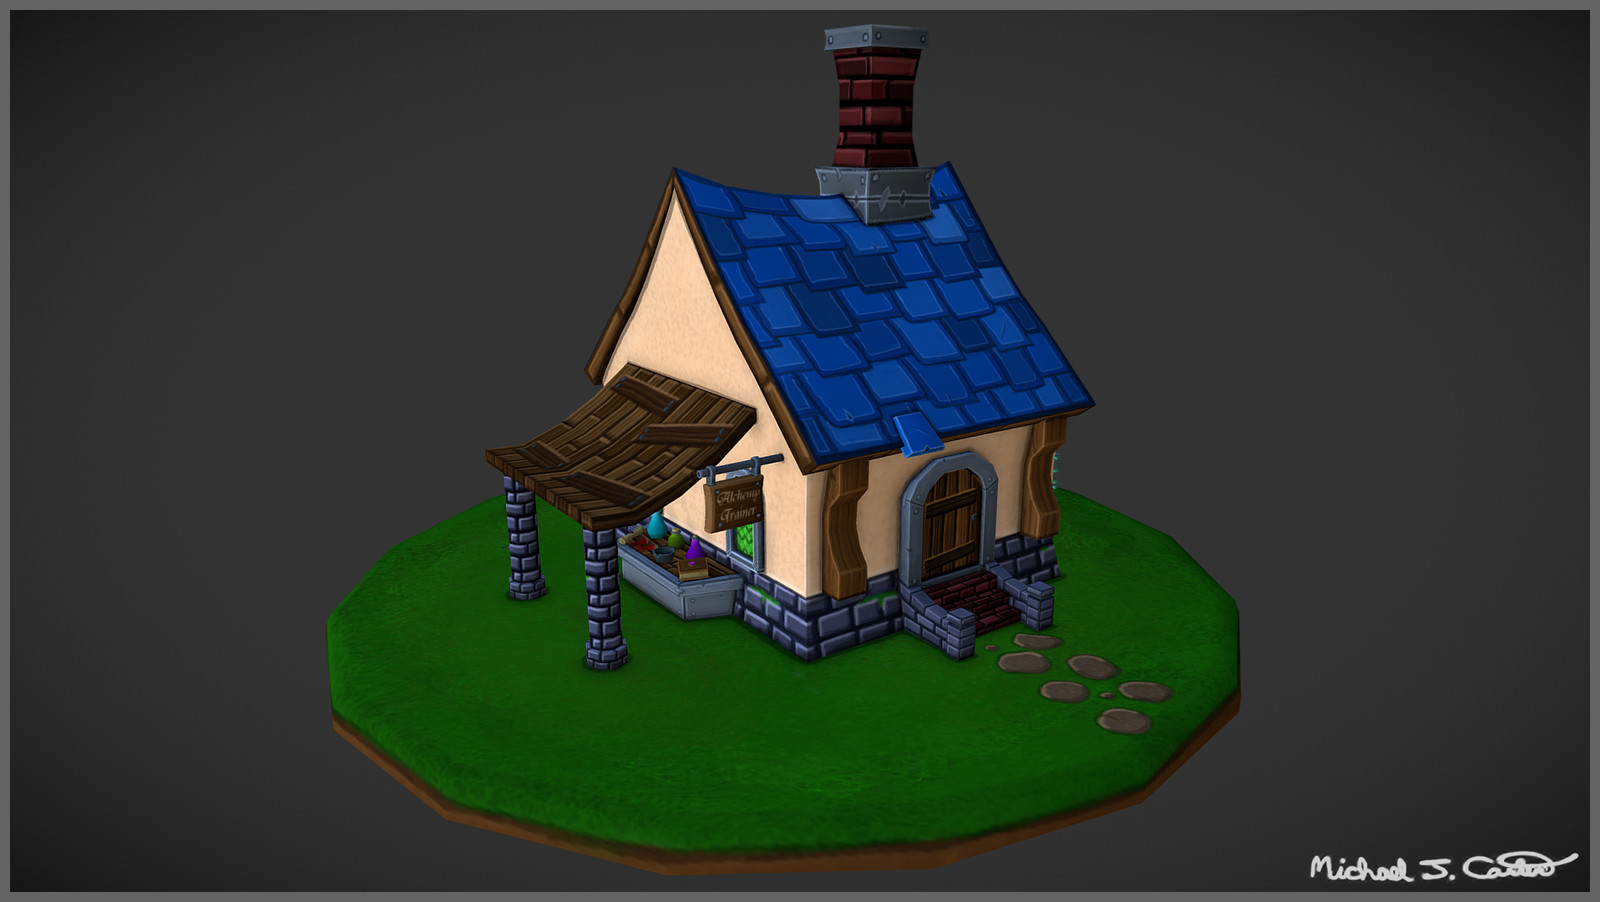 Fantasy House - Alchemy Trainer & Herb Garden